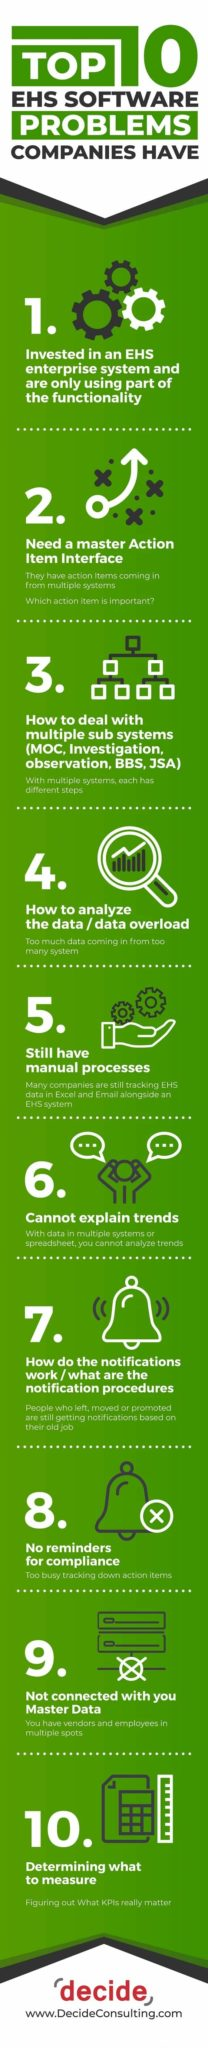 infographic Top 10 EHS Software Problems